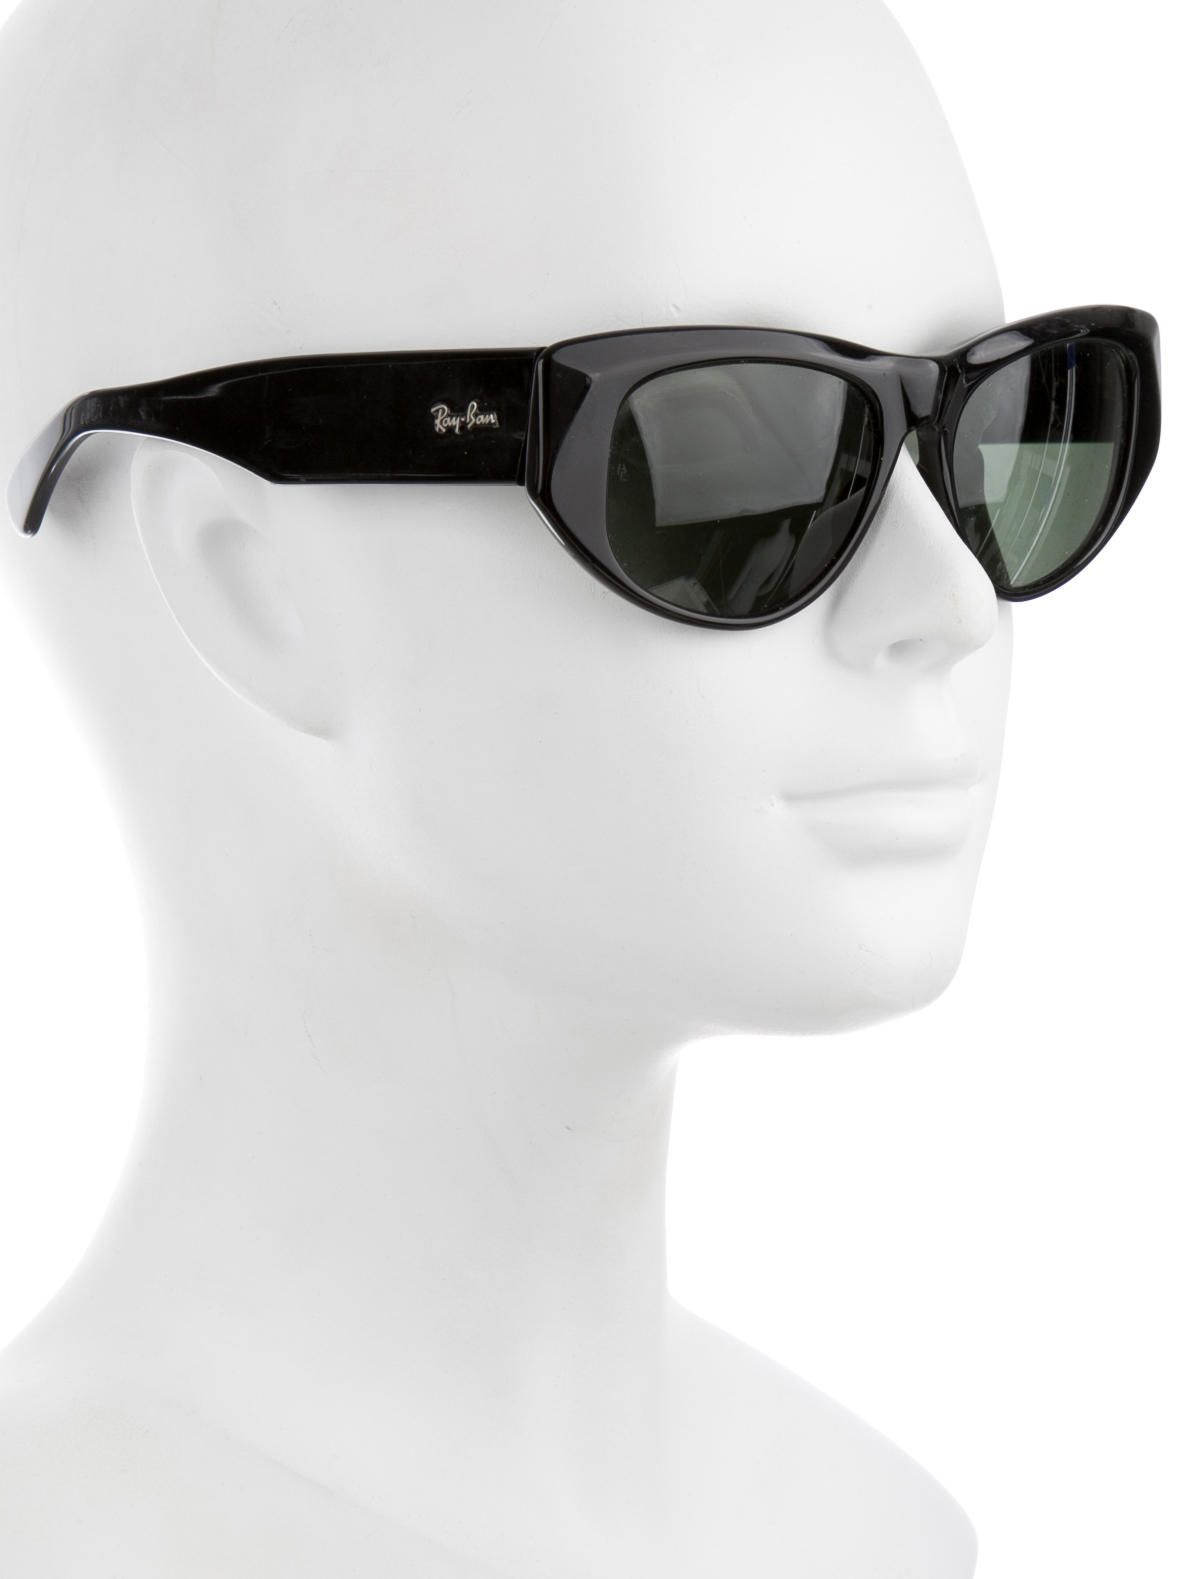 Black resin Ray-Ban cat-eye sunglasses with green lenses, textured accents  at frames and silver-tone logo details at temples. Includes case. 42c4e94815